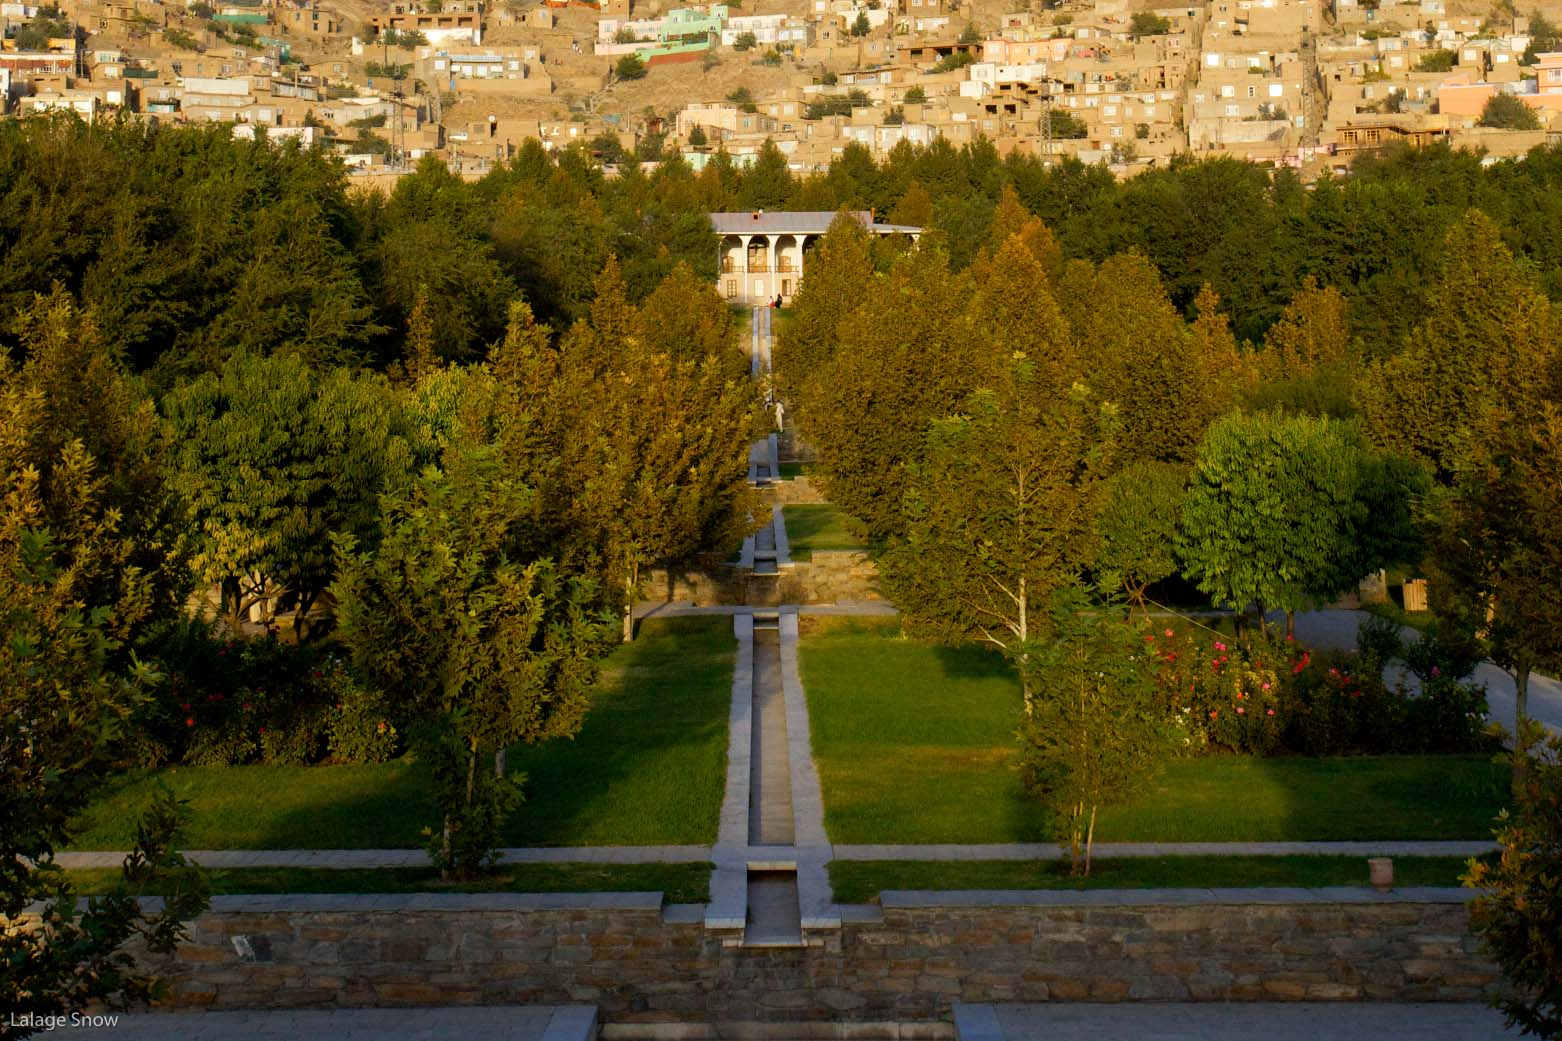 A view of Bagh-e-Babur in Kabul…The Emperor Babur built his finest ...